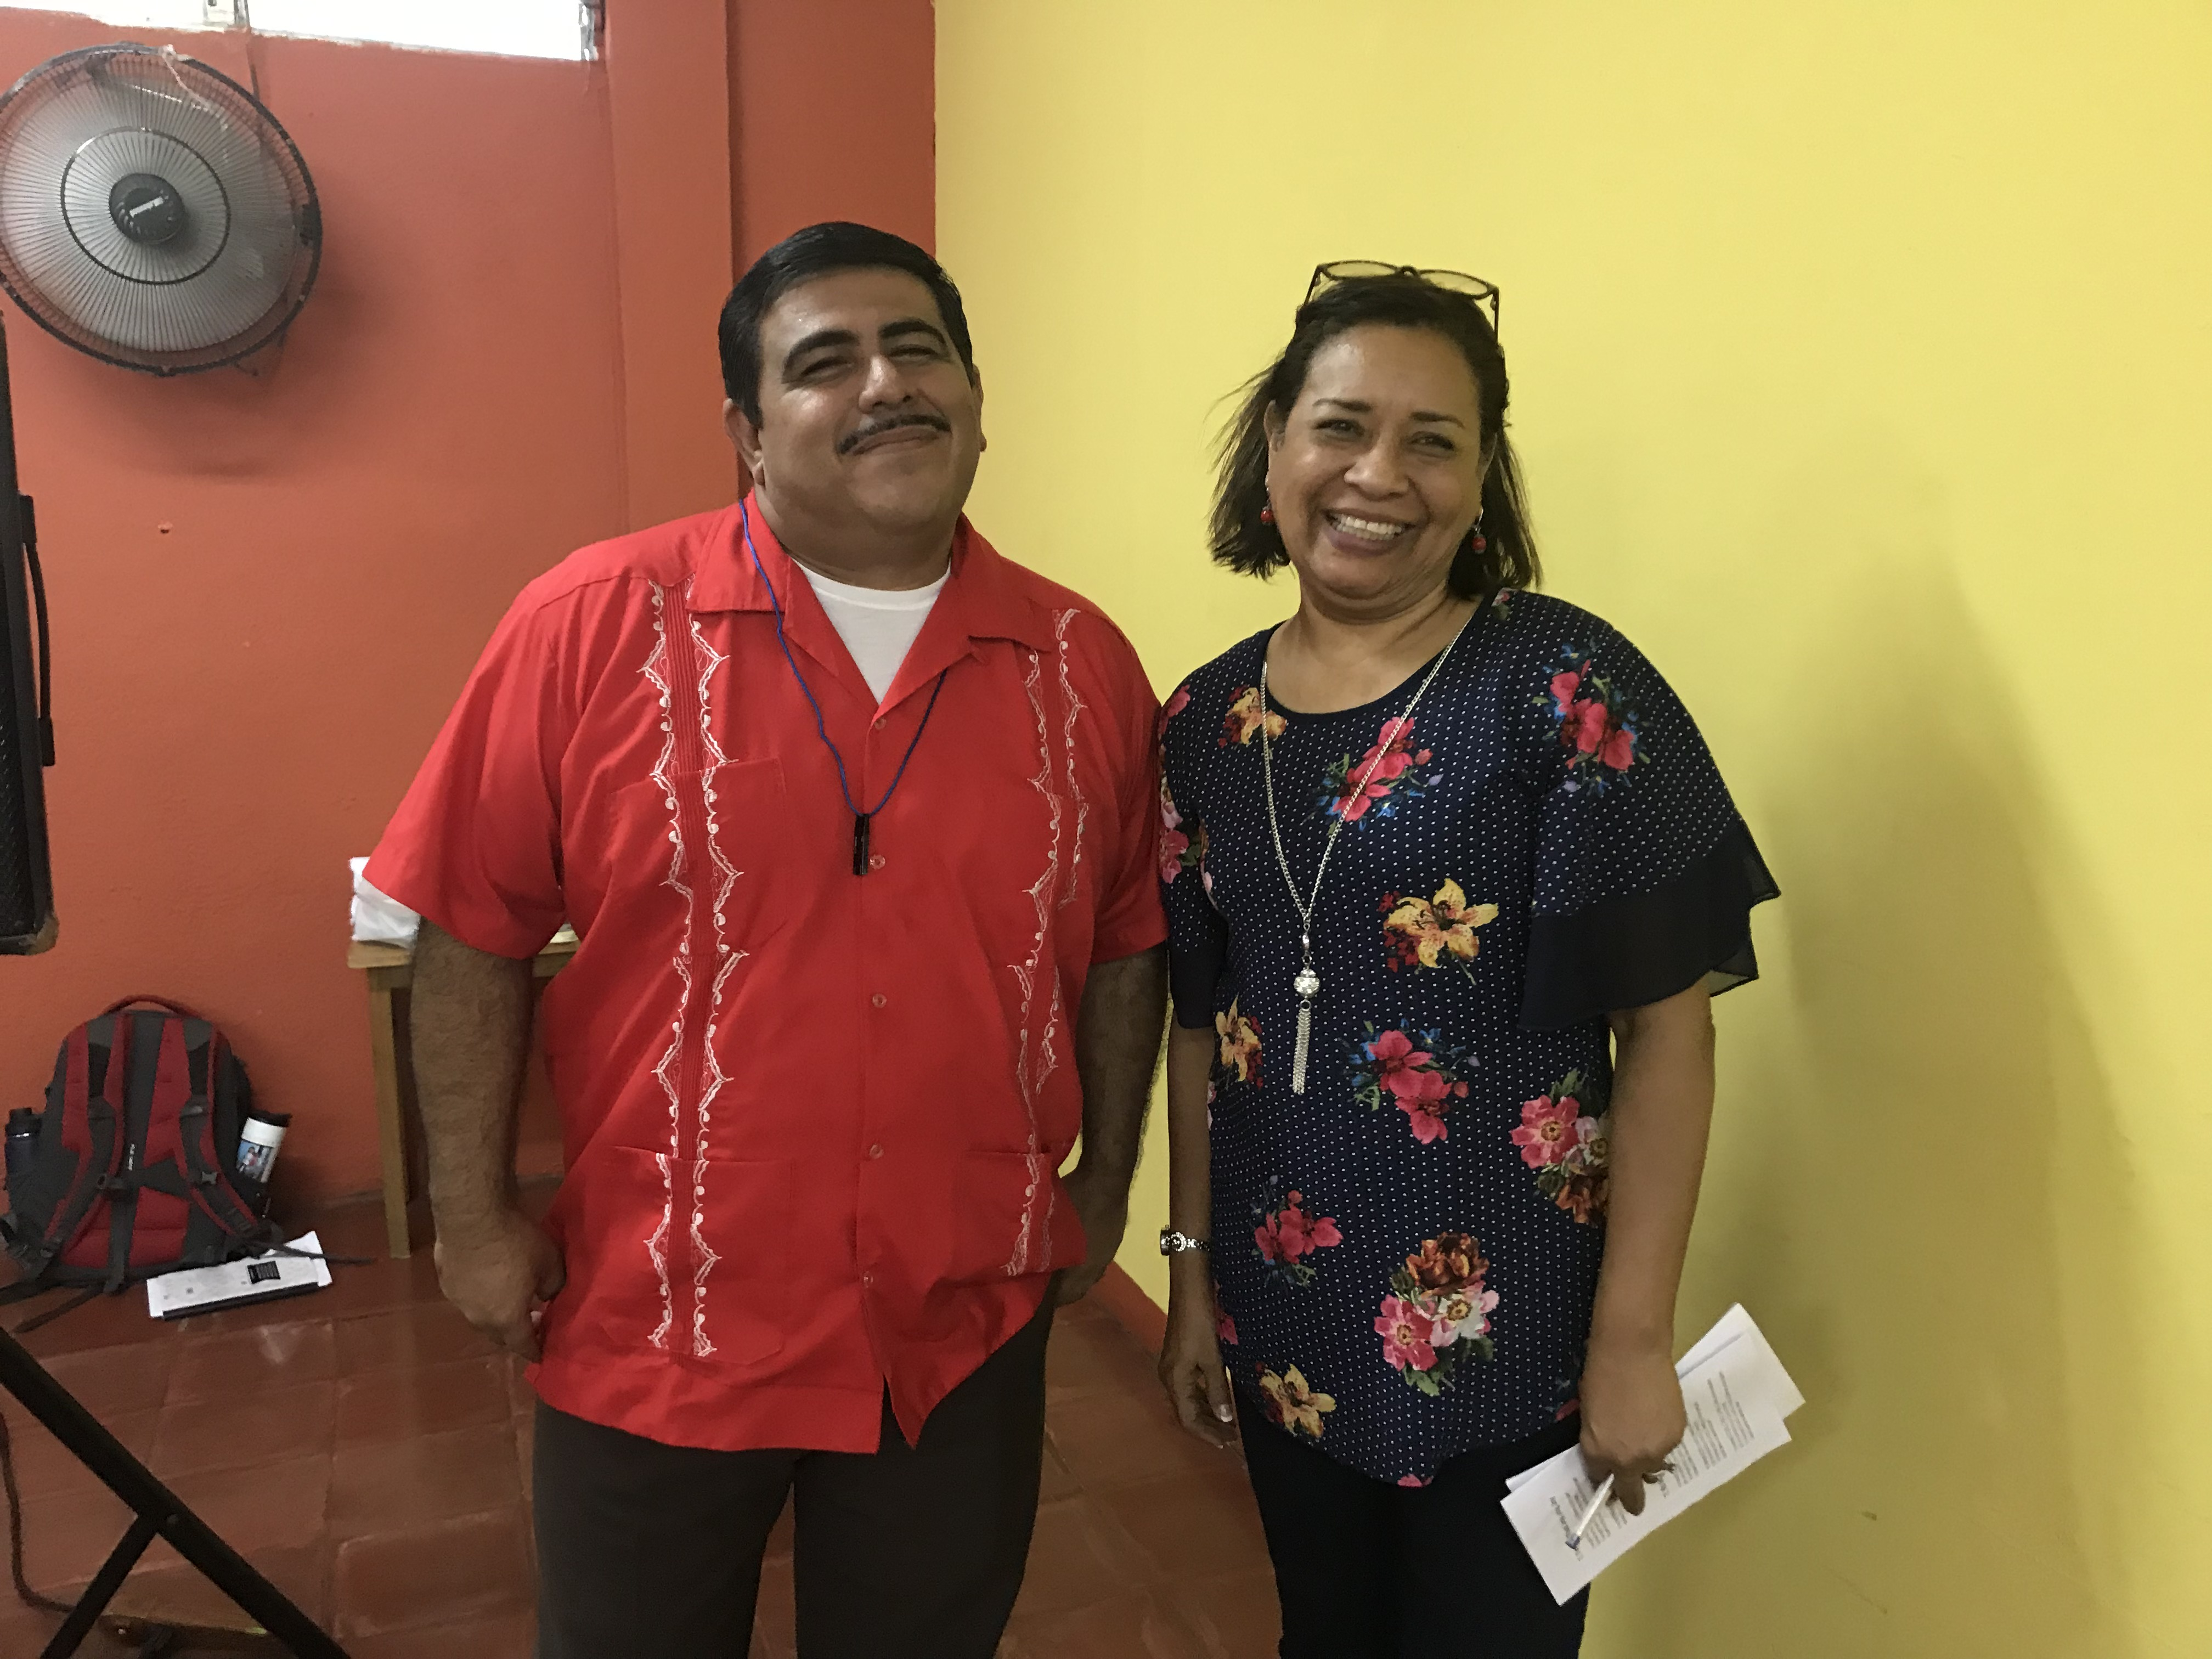 CEPAD's International Partnership Encounter was led this year by two amazing leaders, Pastor Freddy Solorzano and Anita Taylor.